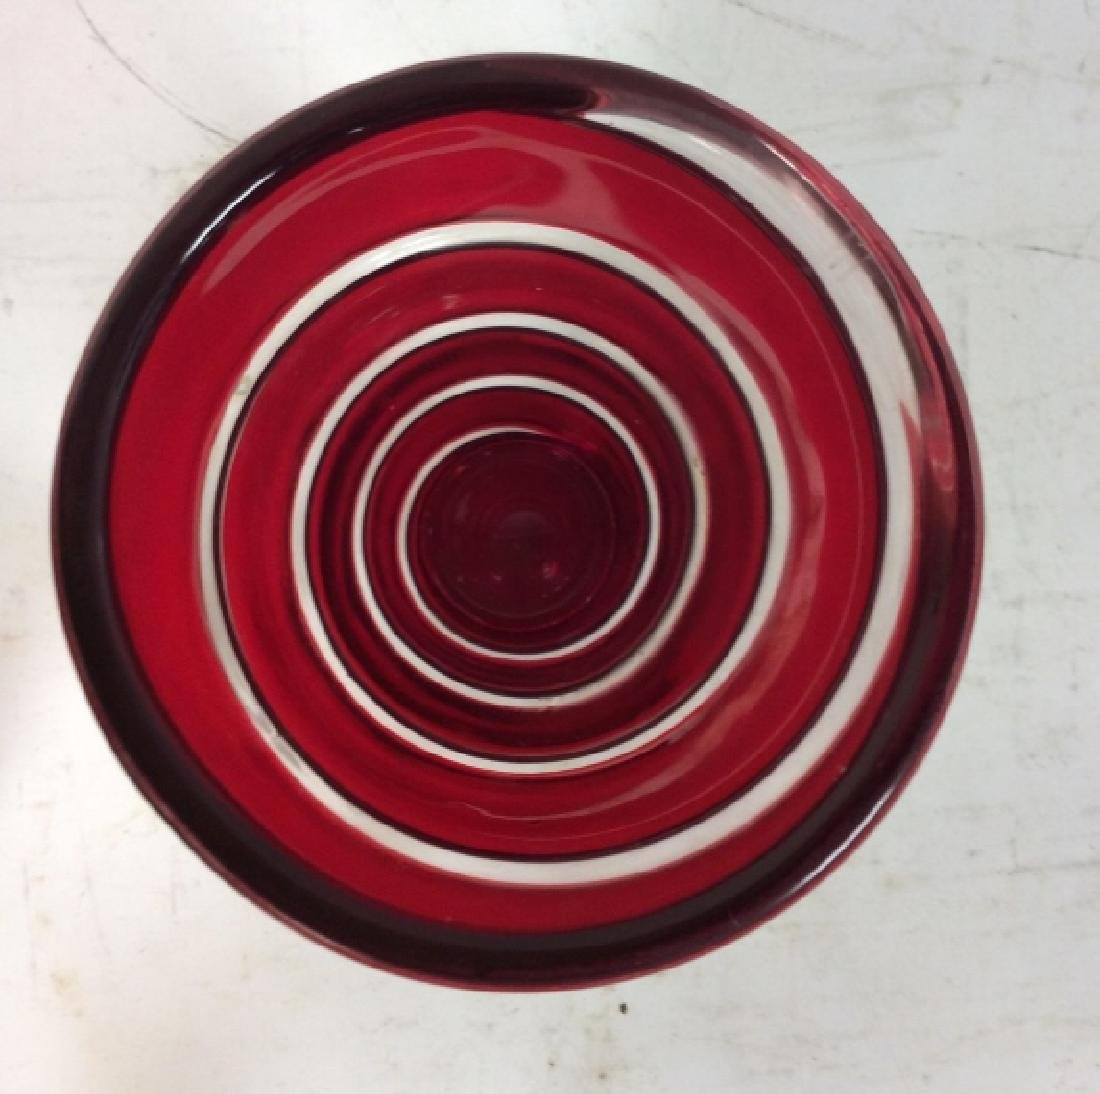 Red Art Glass Swirl Vase - 3